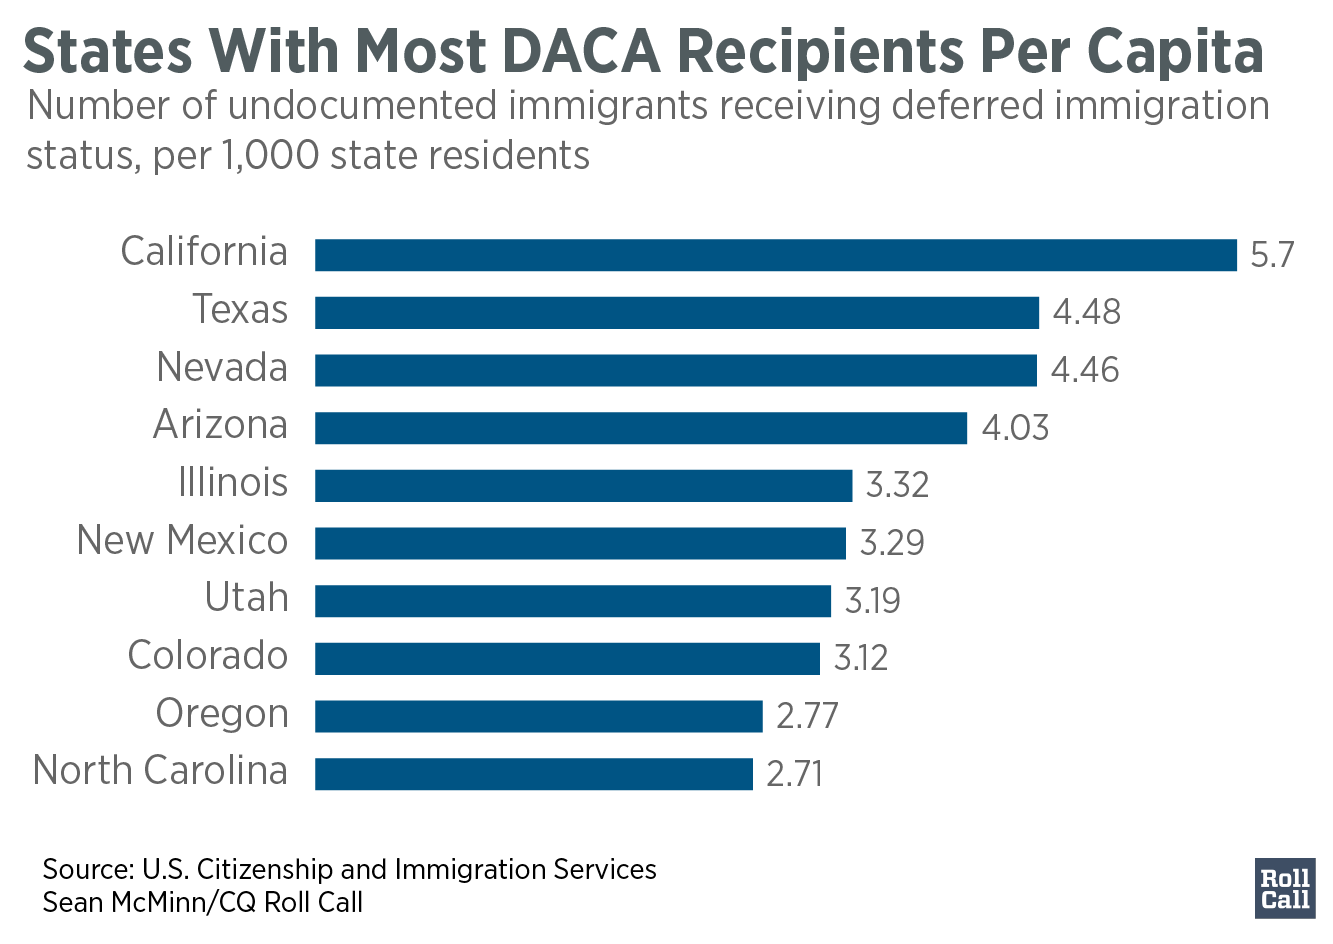 q3States_With_Most_DACA_Recipients_Per_Capita_per_k_approved_chartbuilder-01